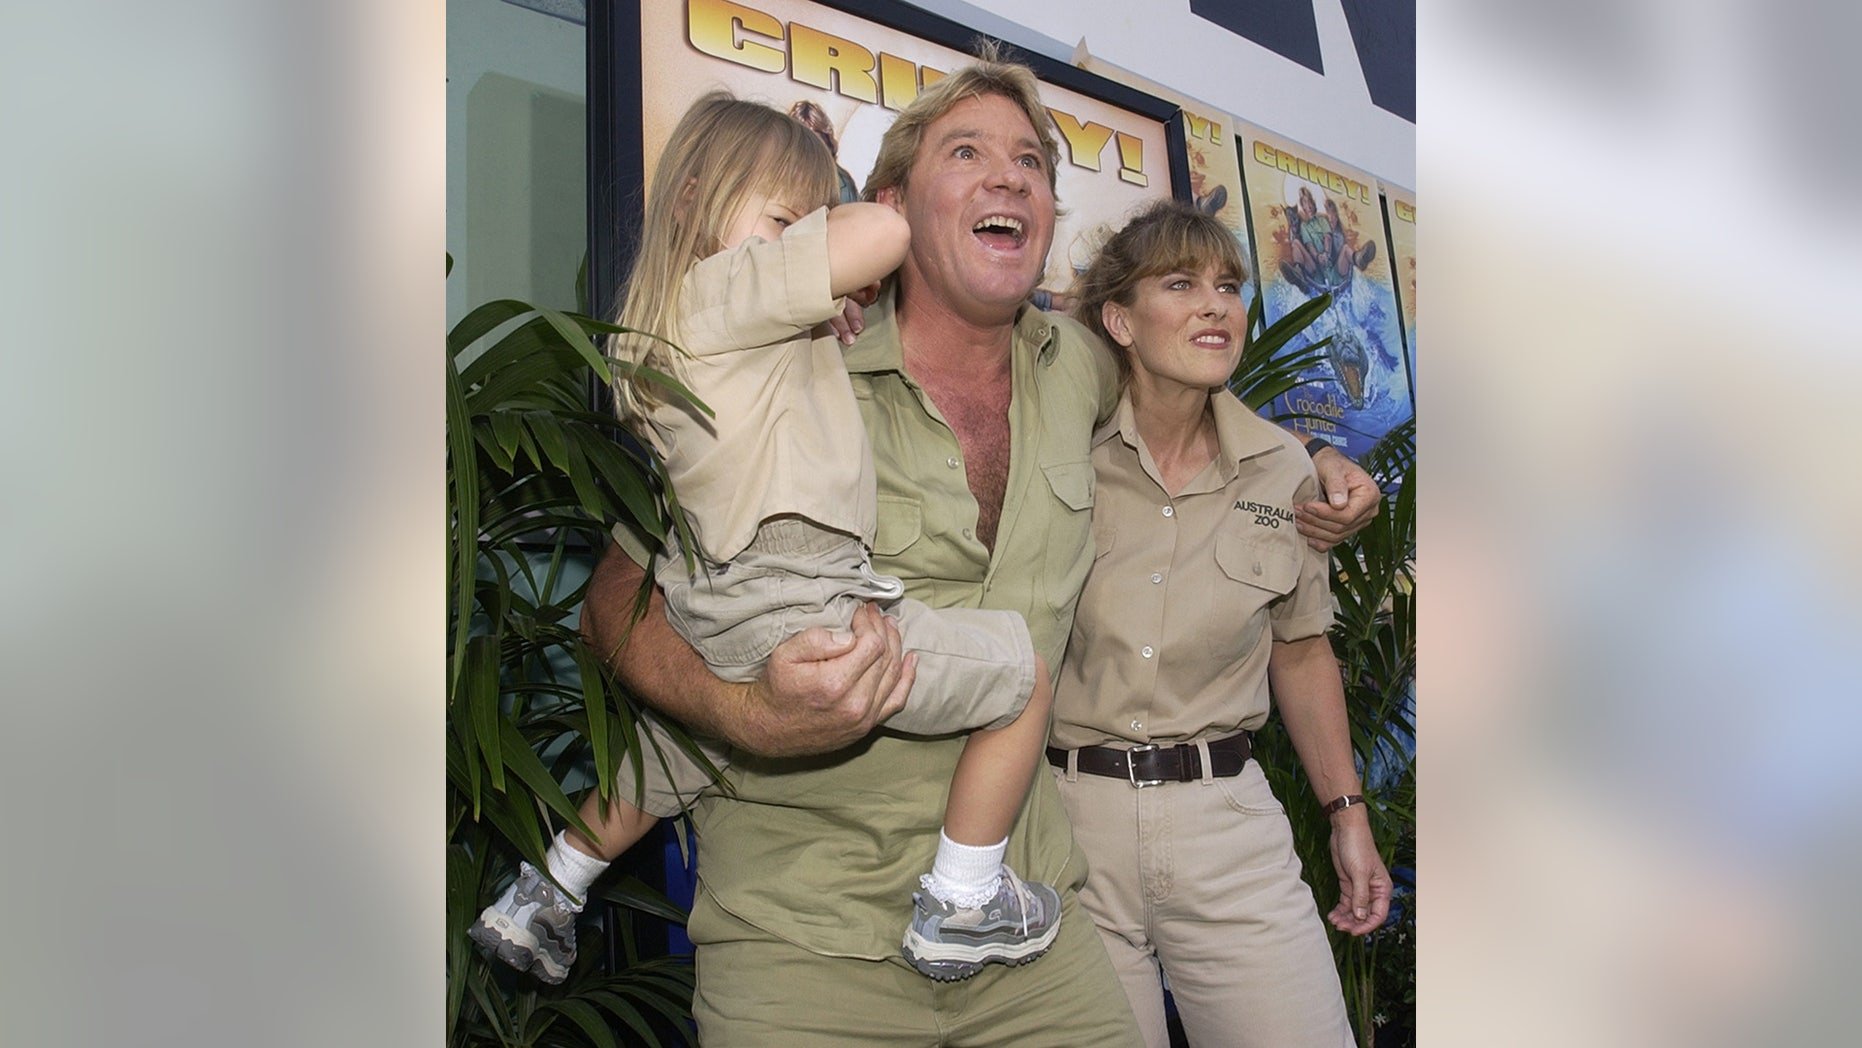 """Australian adventurer Steve Irwin and his wife Terri pose with theirdaughter Bindi at the premiere of the adventure comedy motion picture""""The Crocodile Hunter - Collision Course"""" at the Cinerama Dome in theHollywood section of Los Angeles June 29, 2002. The naturalist coupleappear in the film which opens across the United States on July 12.REUTERS/Jim RuymenJR - RP3DRIBMLDAA"""